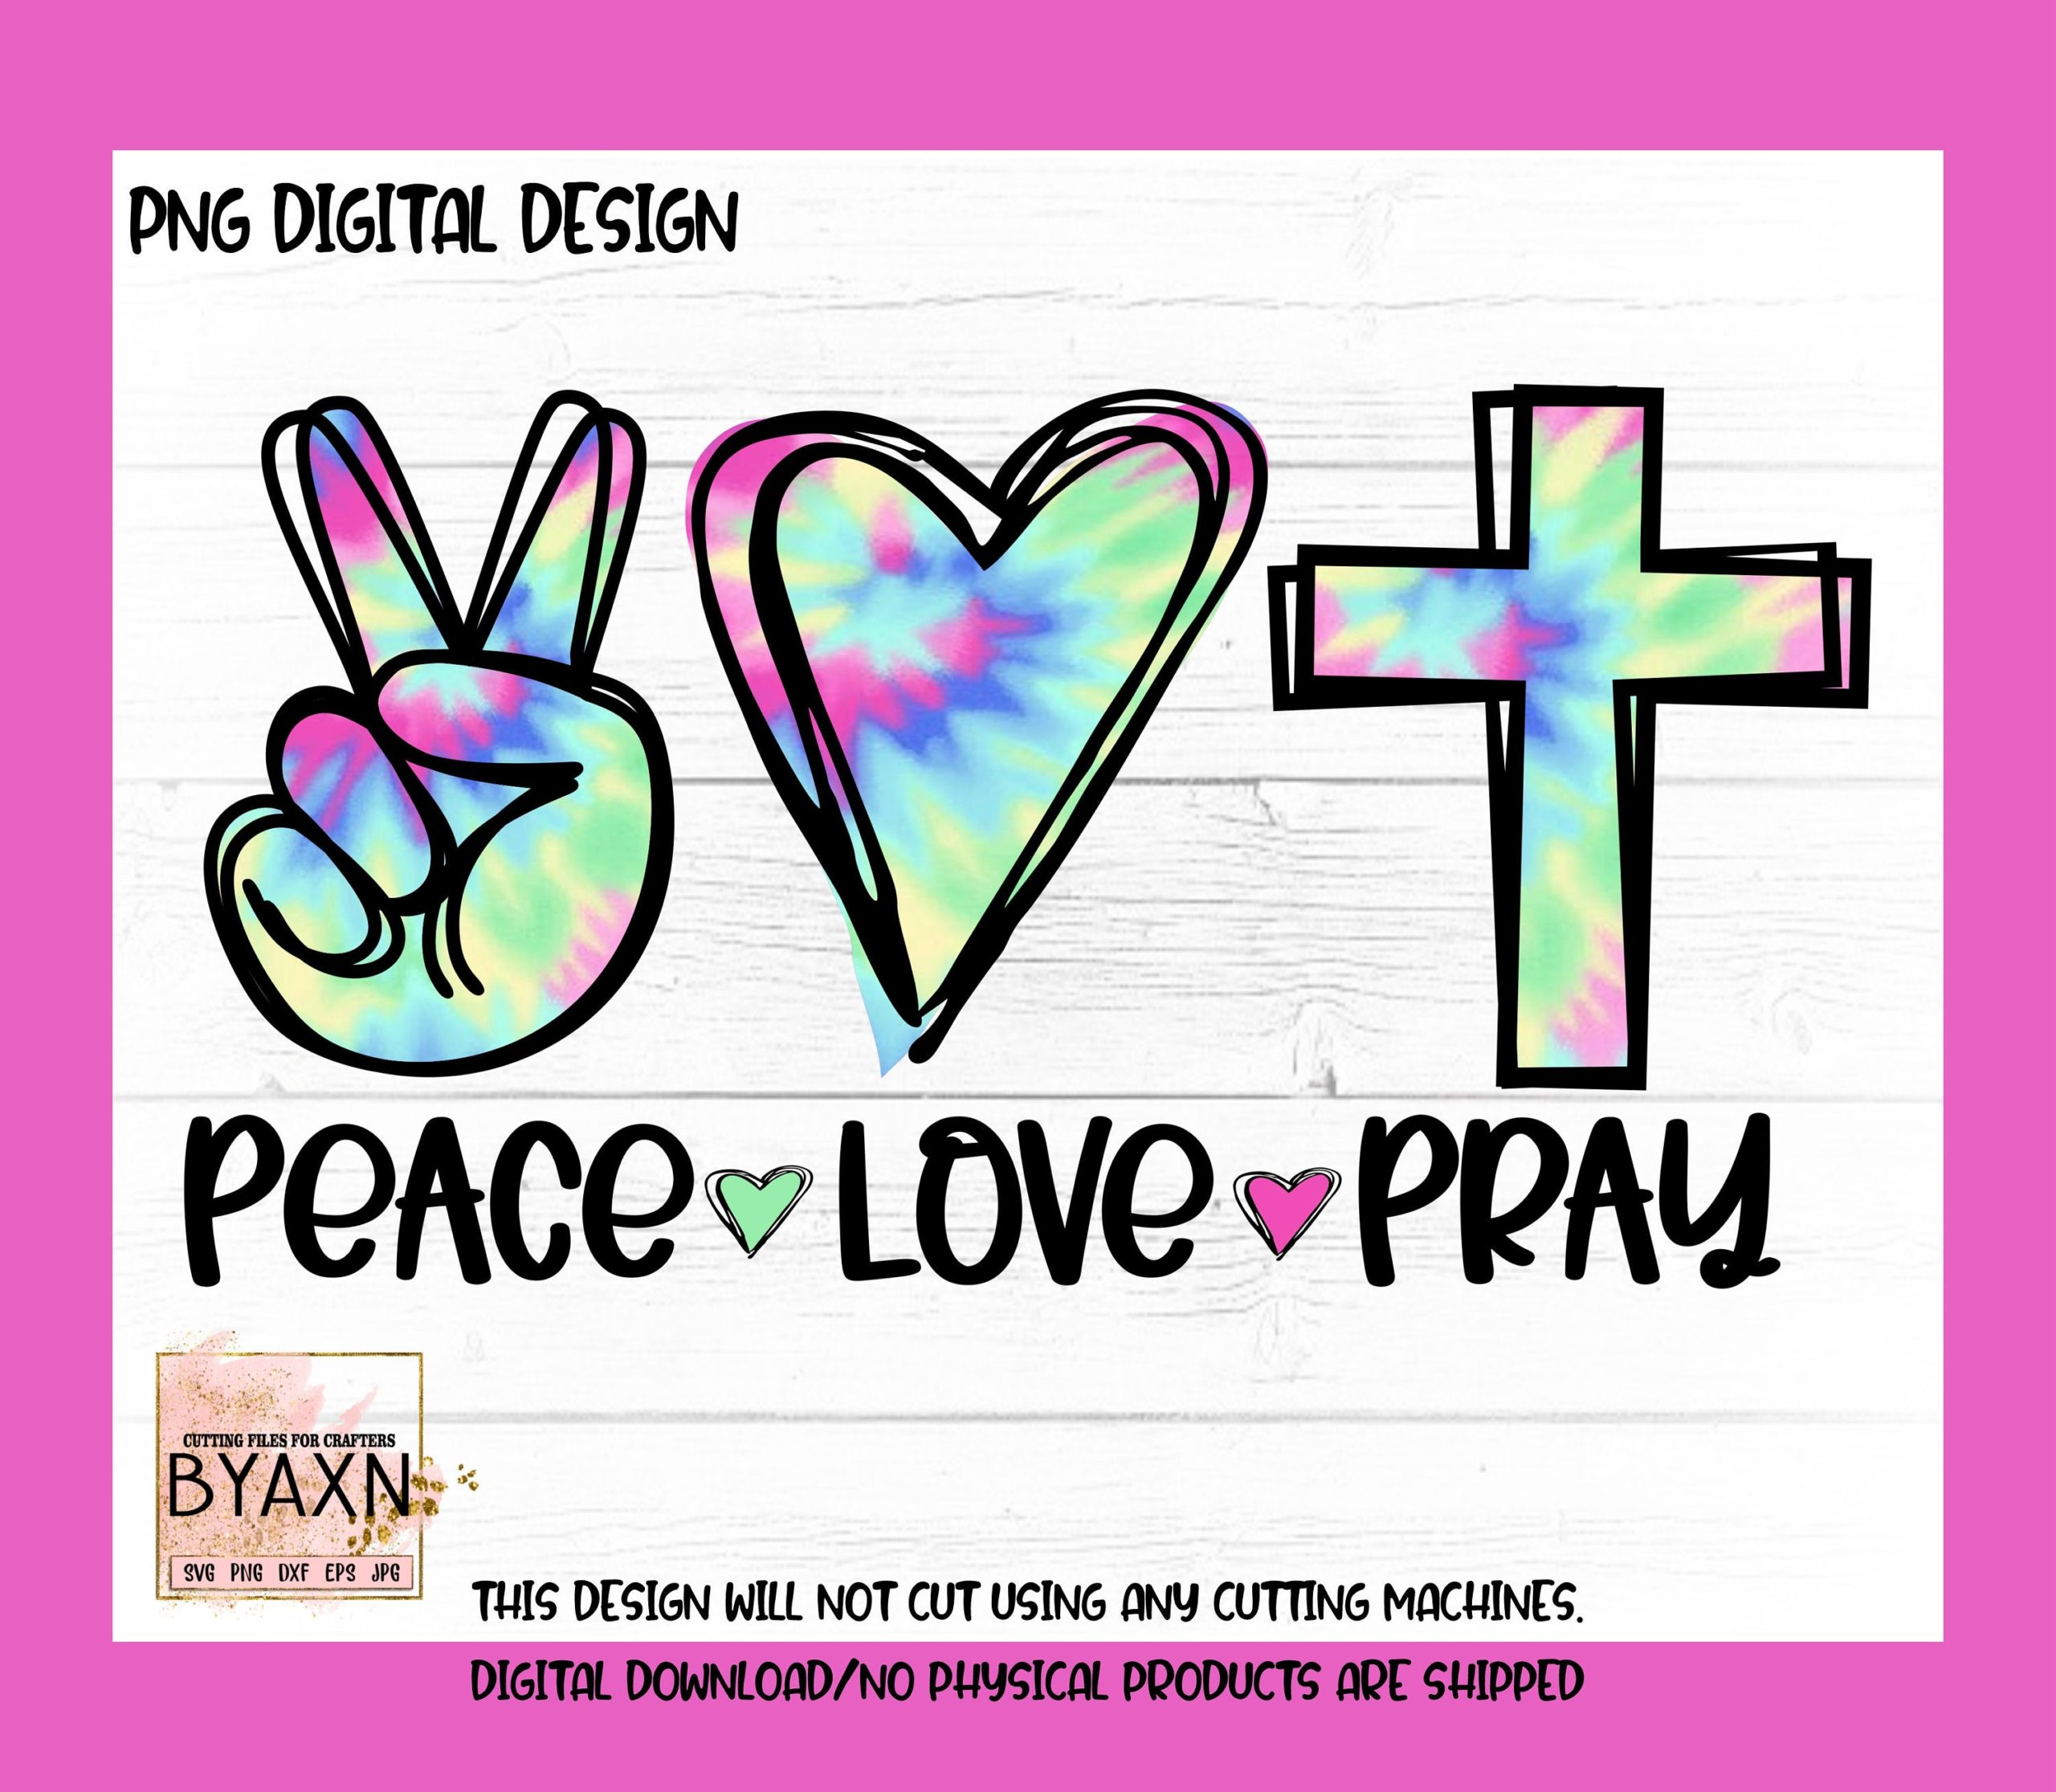 Peace-love-pray-png-tie-dye-png-print-file-for-sublimation-christian-sublimation-peace-love-png-sublimation-png-designs-png-designs-6051494a